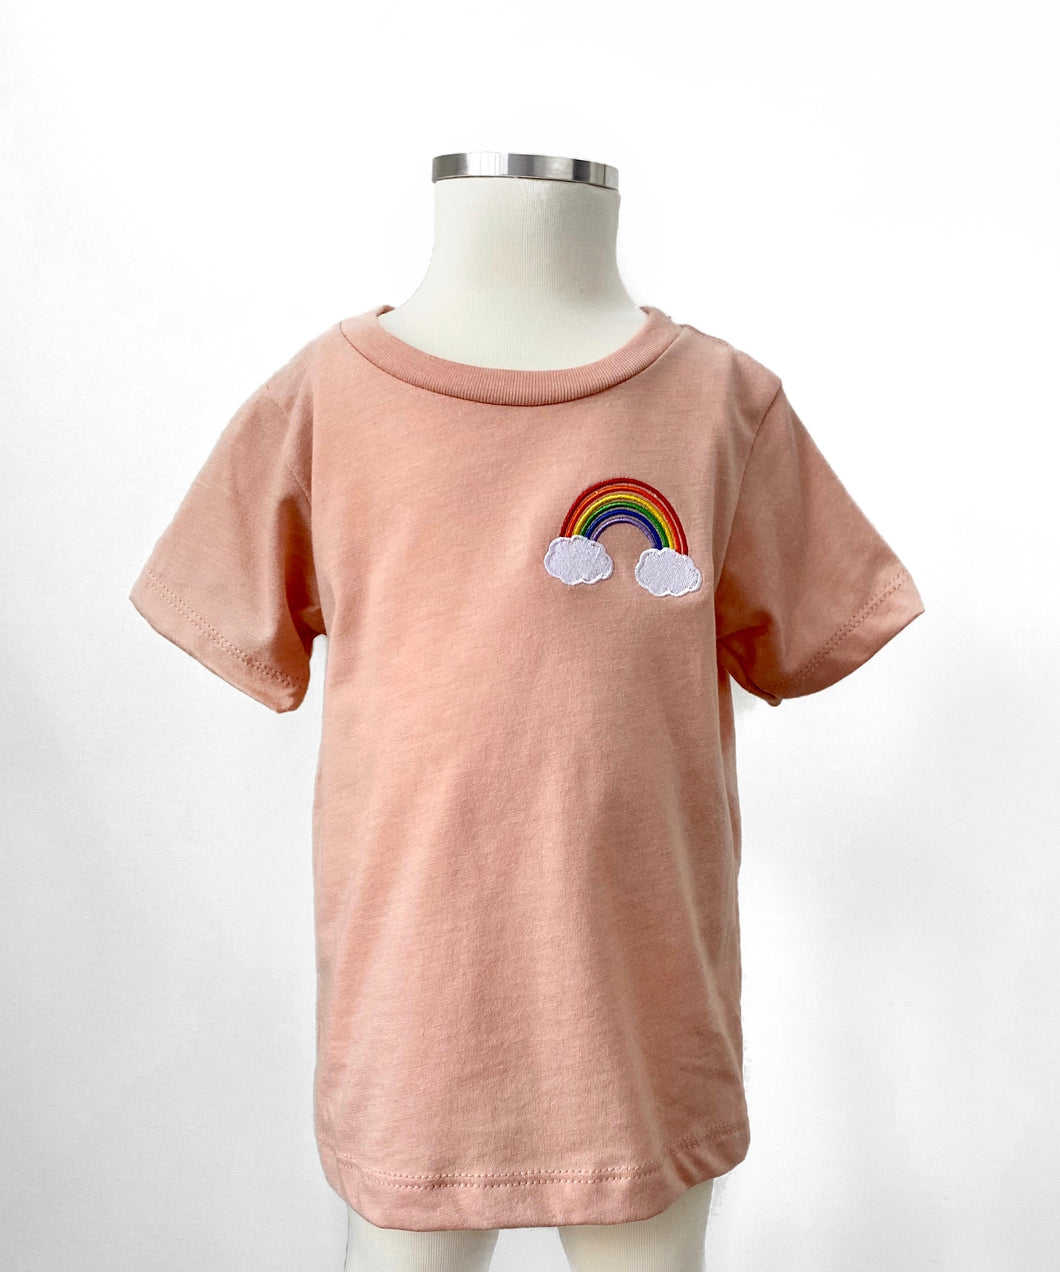 MM Rainbow T-Shirt